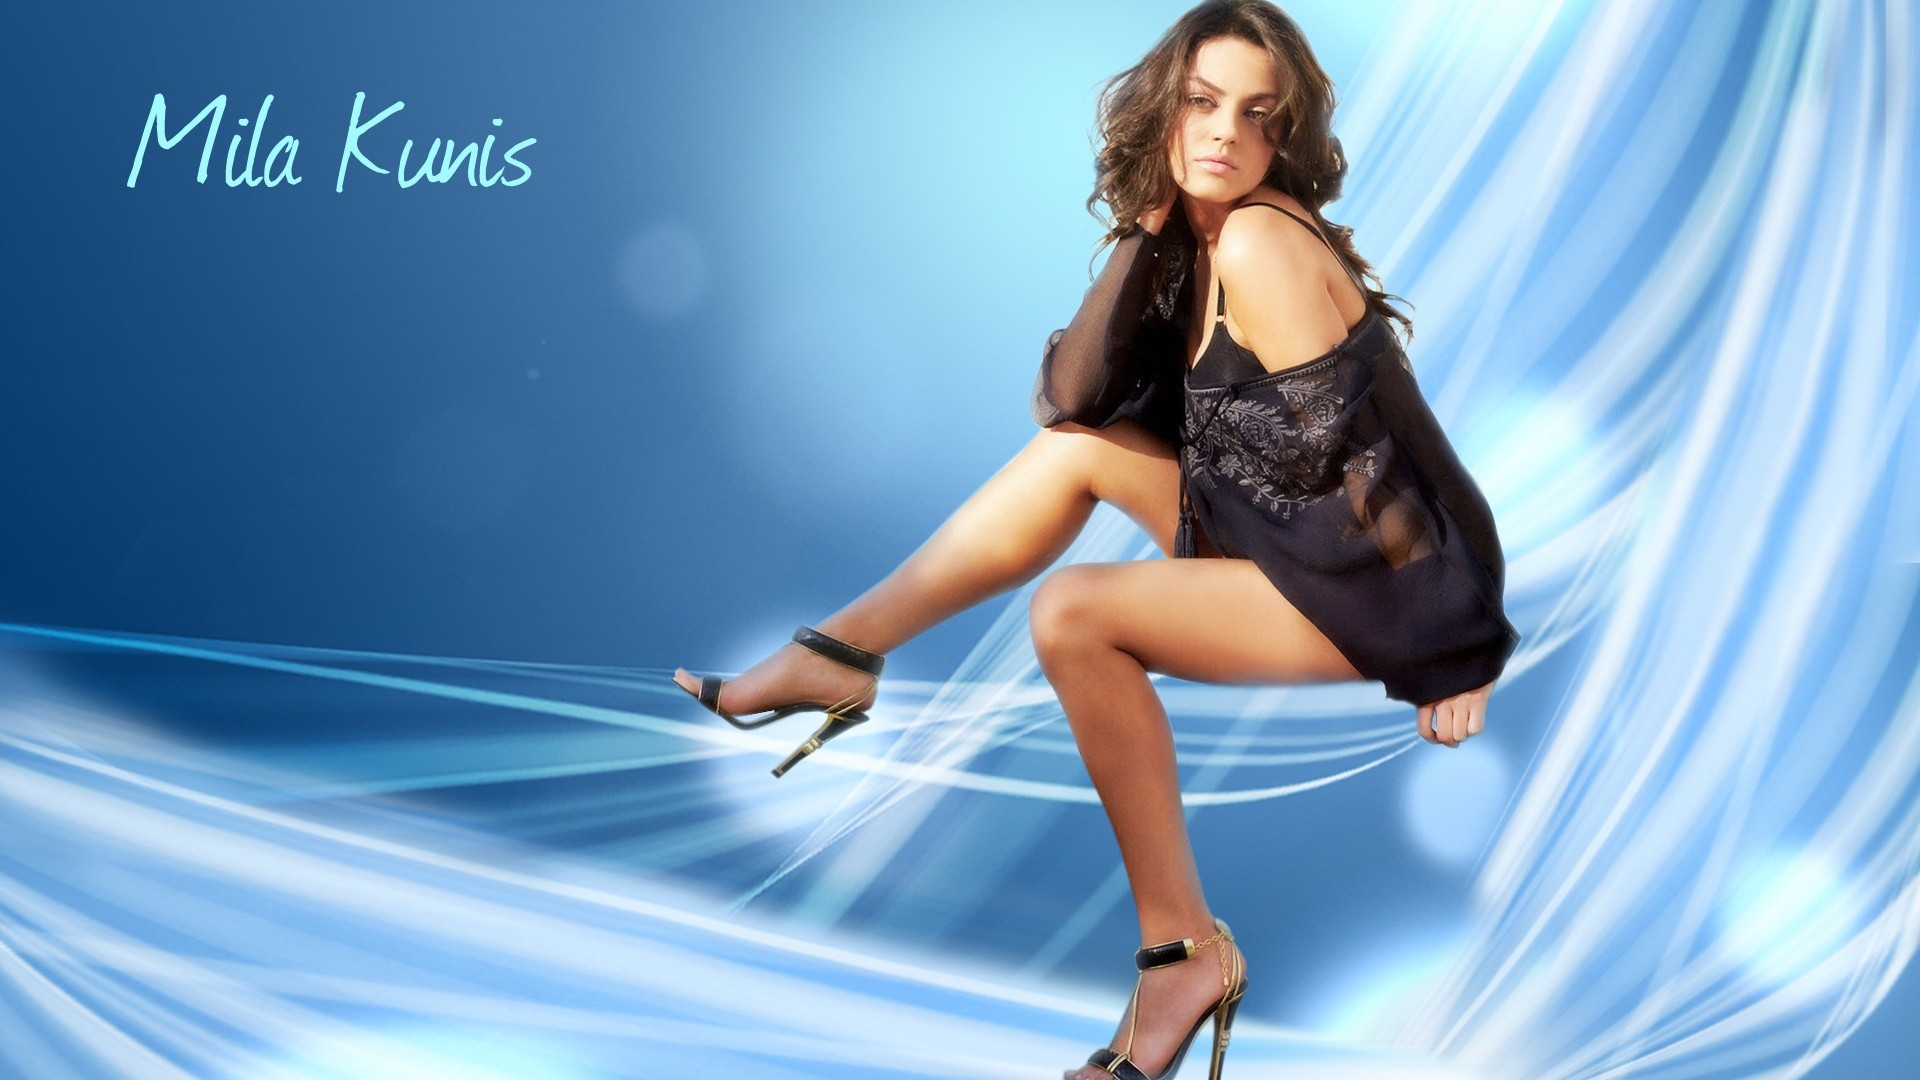 Mila Kunis Feet wallpaper 221420 1920x1080